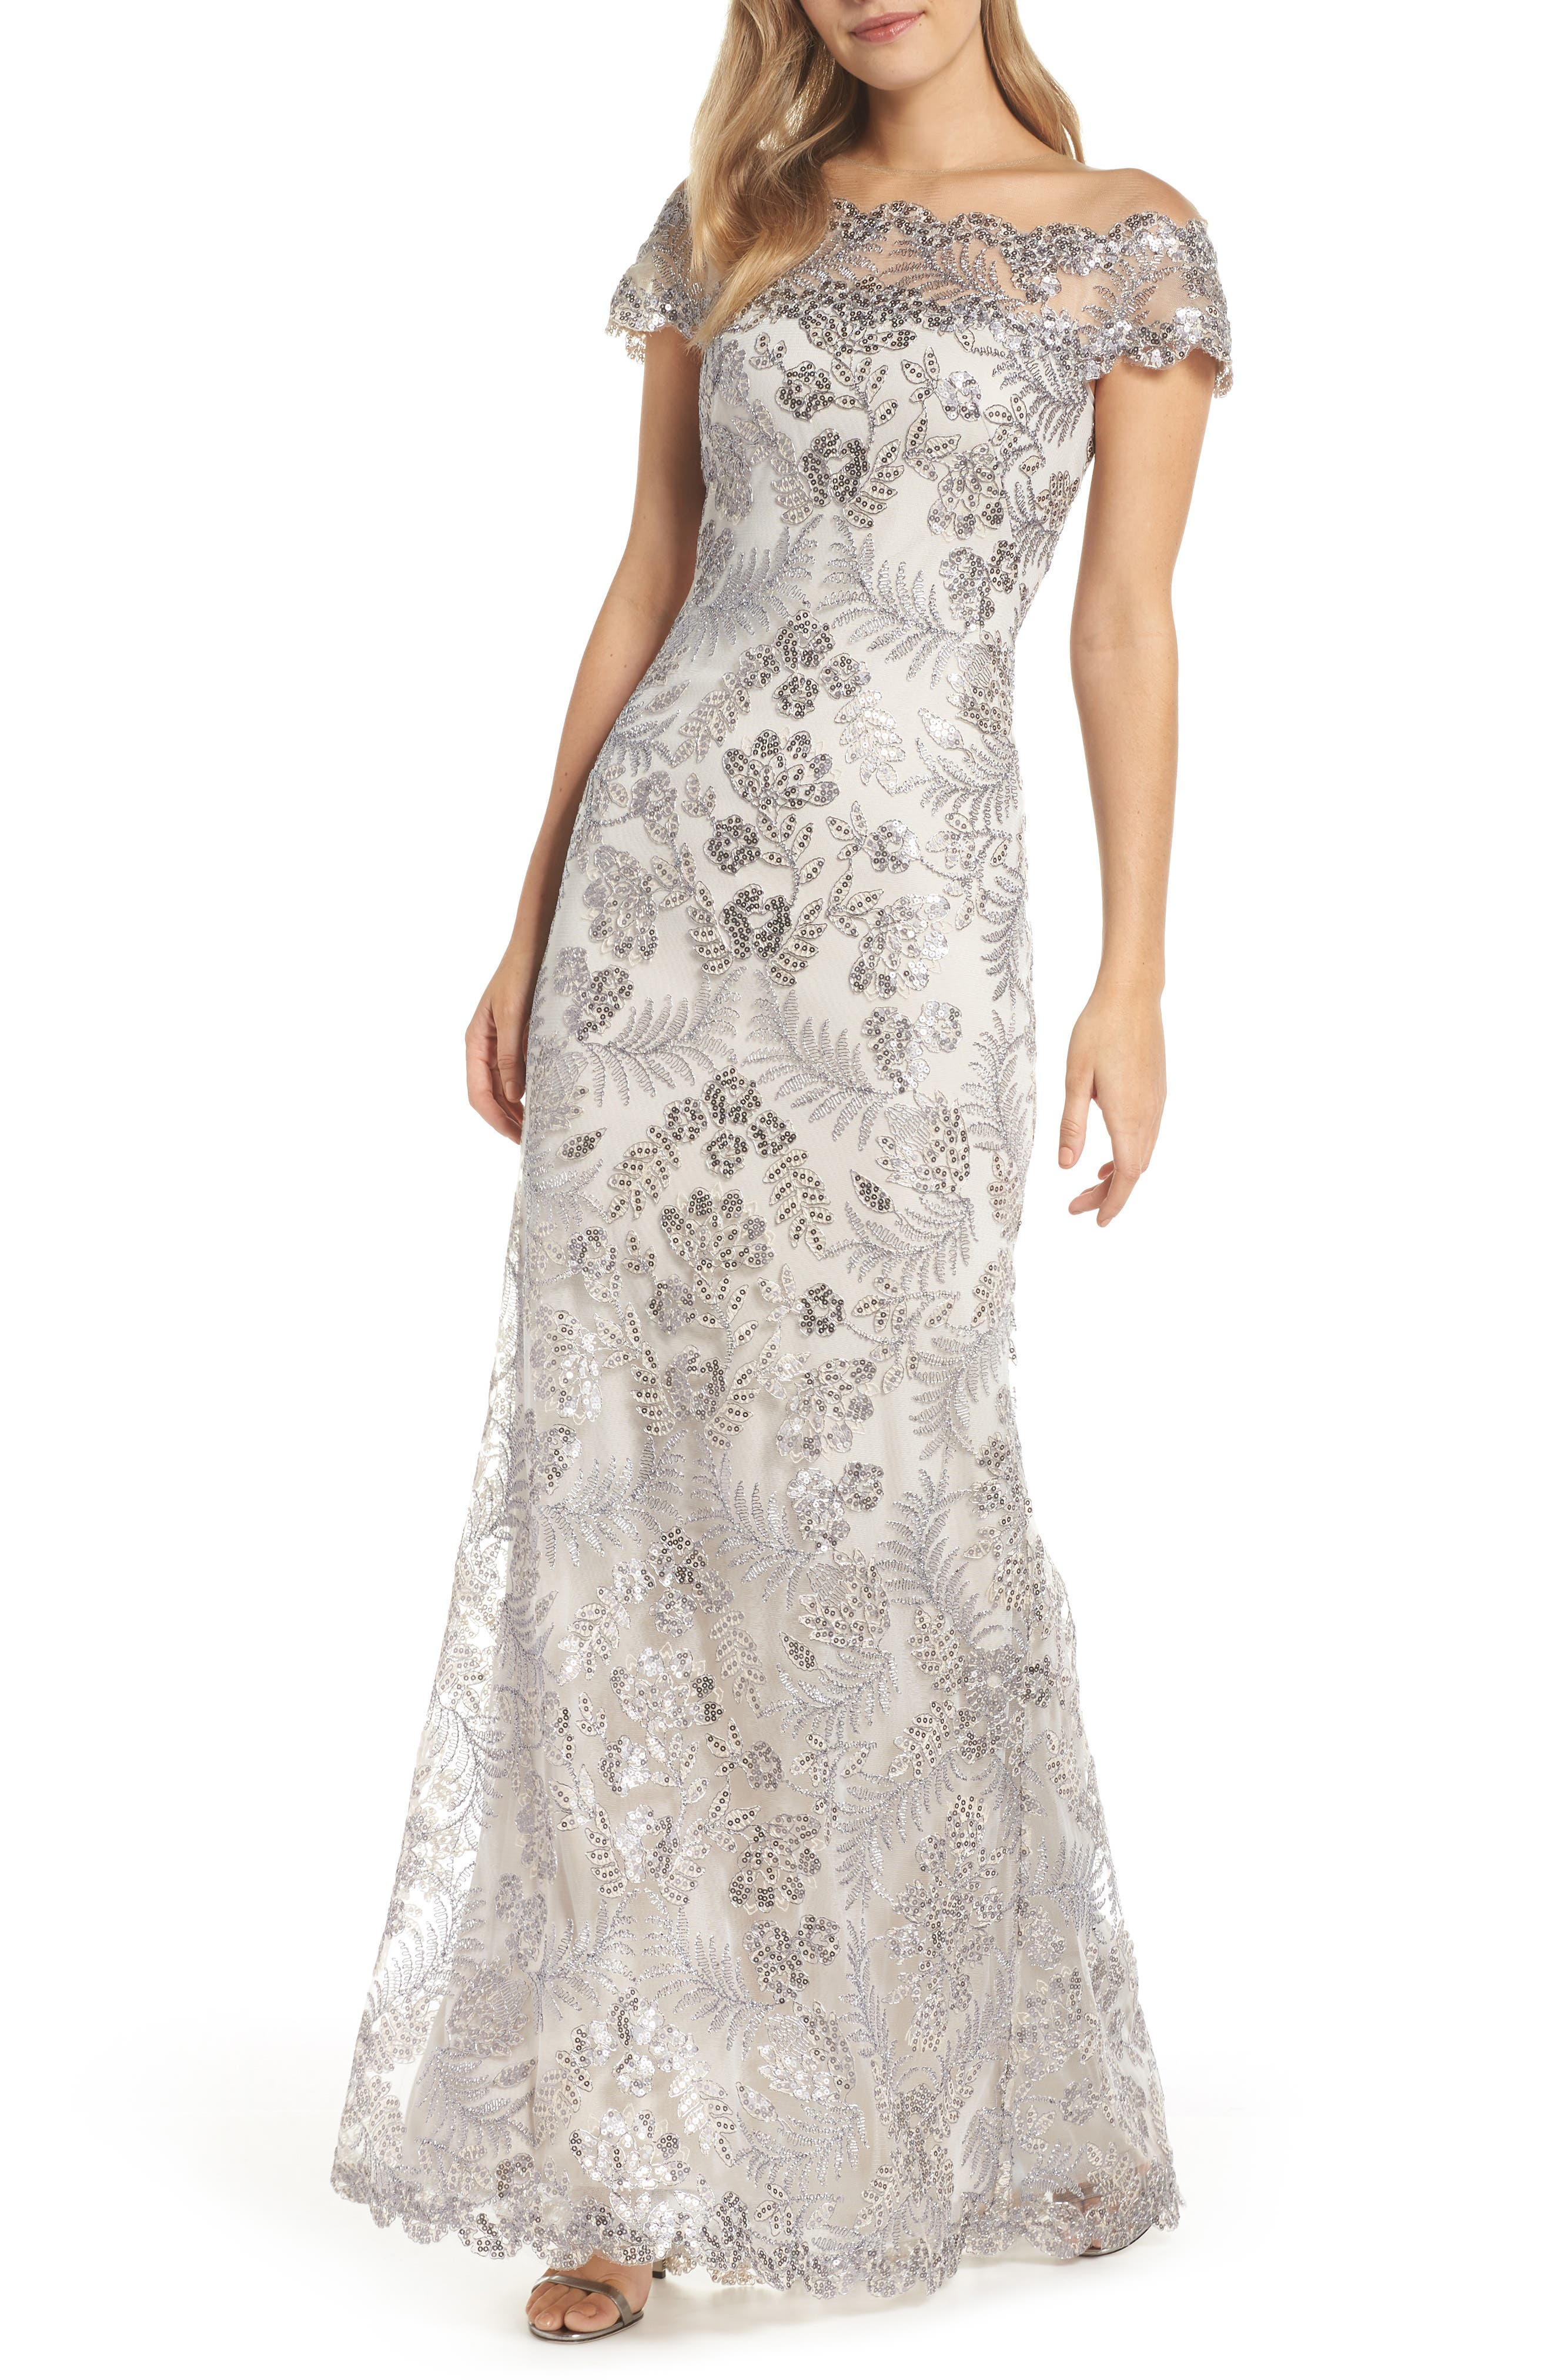 Vintage Inspired Wedding Dress | Vintage Style Wedding Dresses Womens Tadashi Shoji Illusion Neck Sequin Lace Gown Size 4 - Ivory $548.00 AT vintagedancer.com